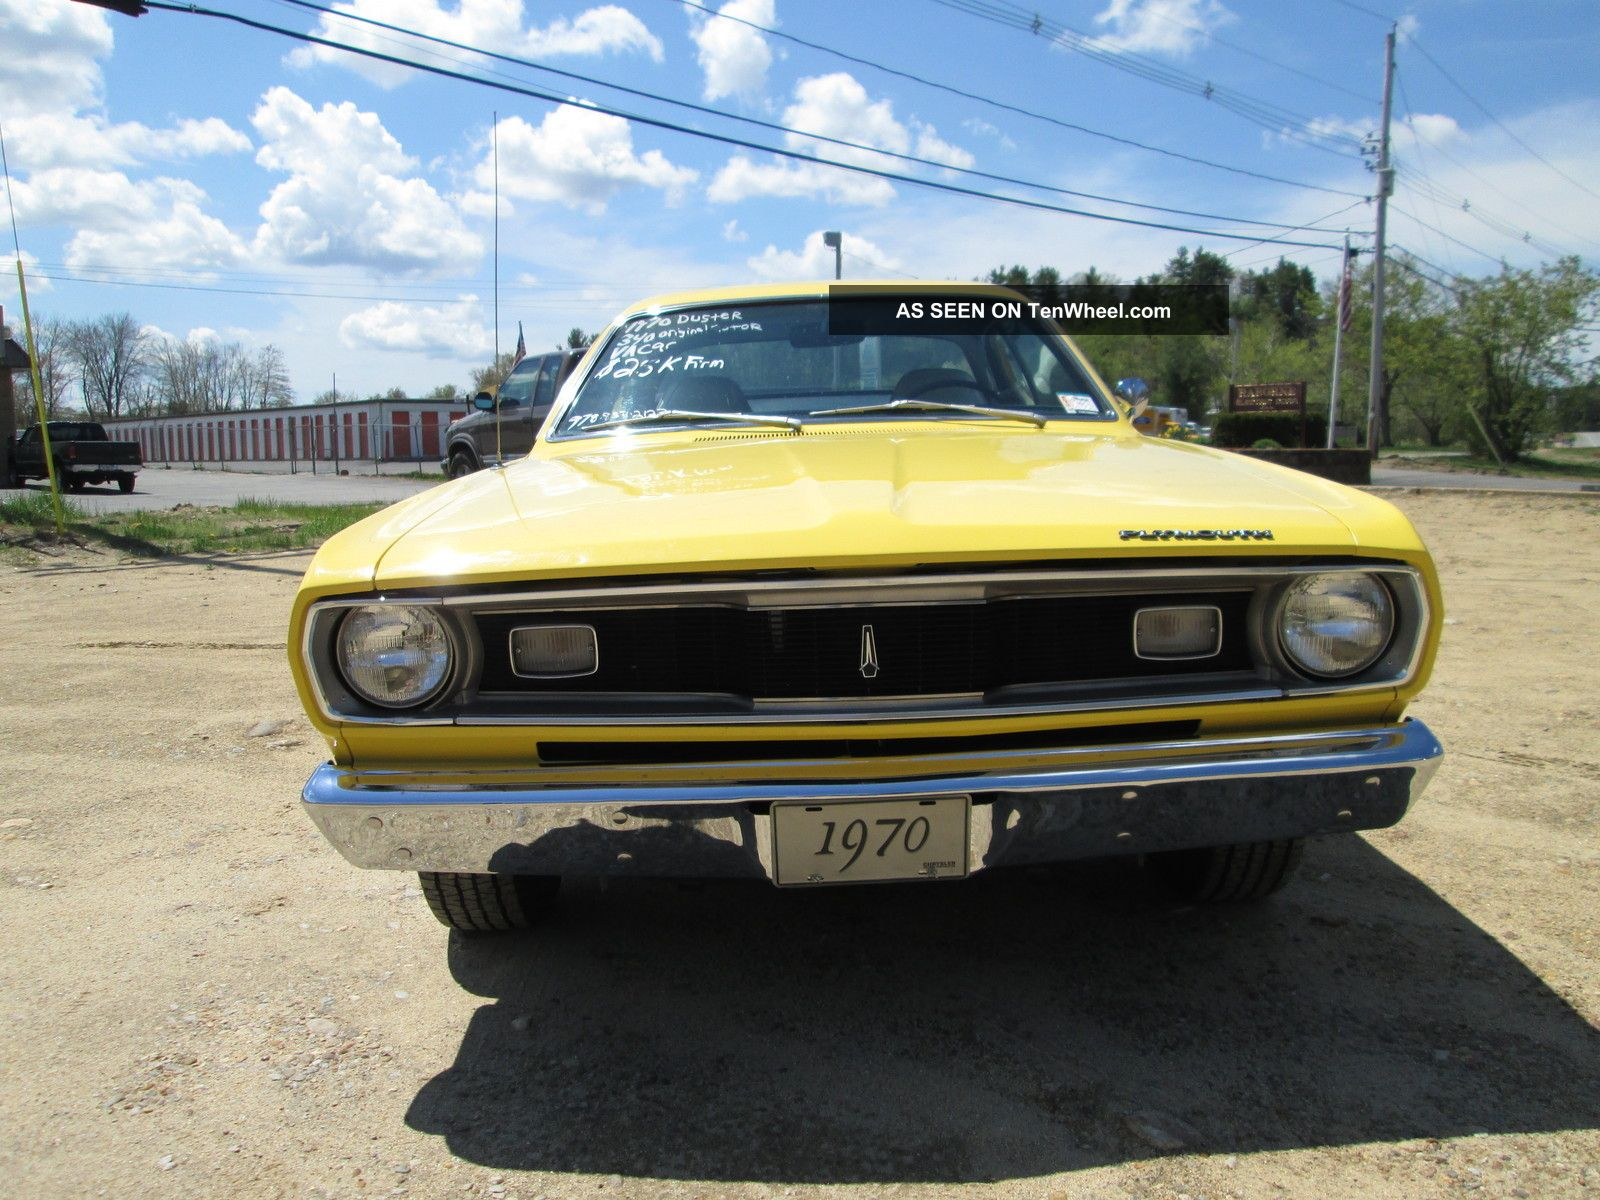 1970 Plymouth Duster 340 Duster photo